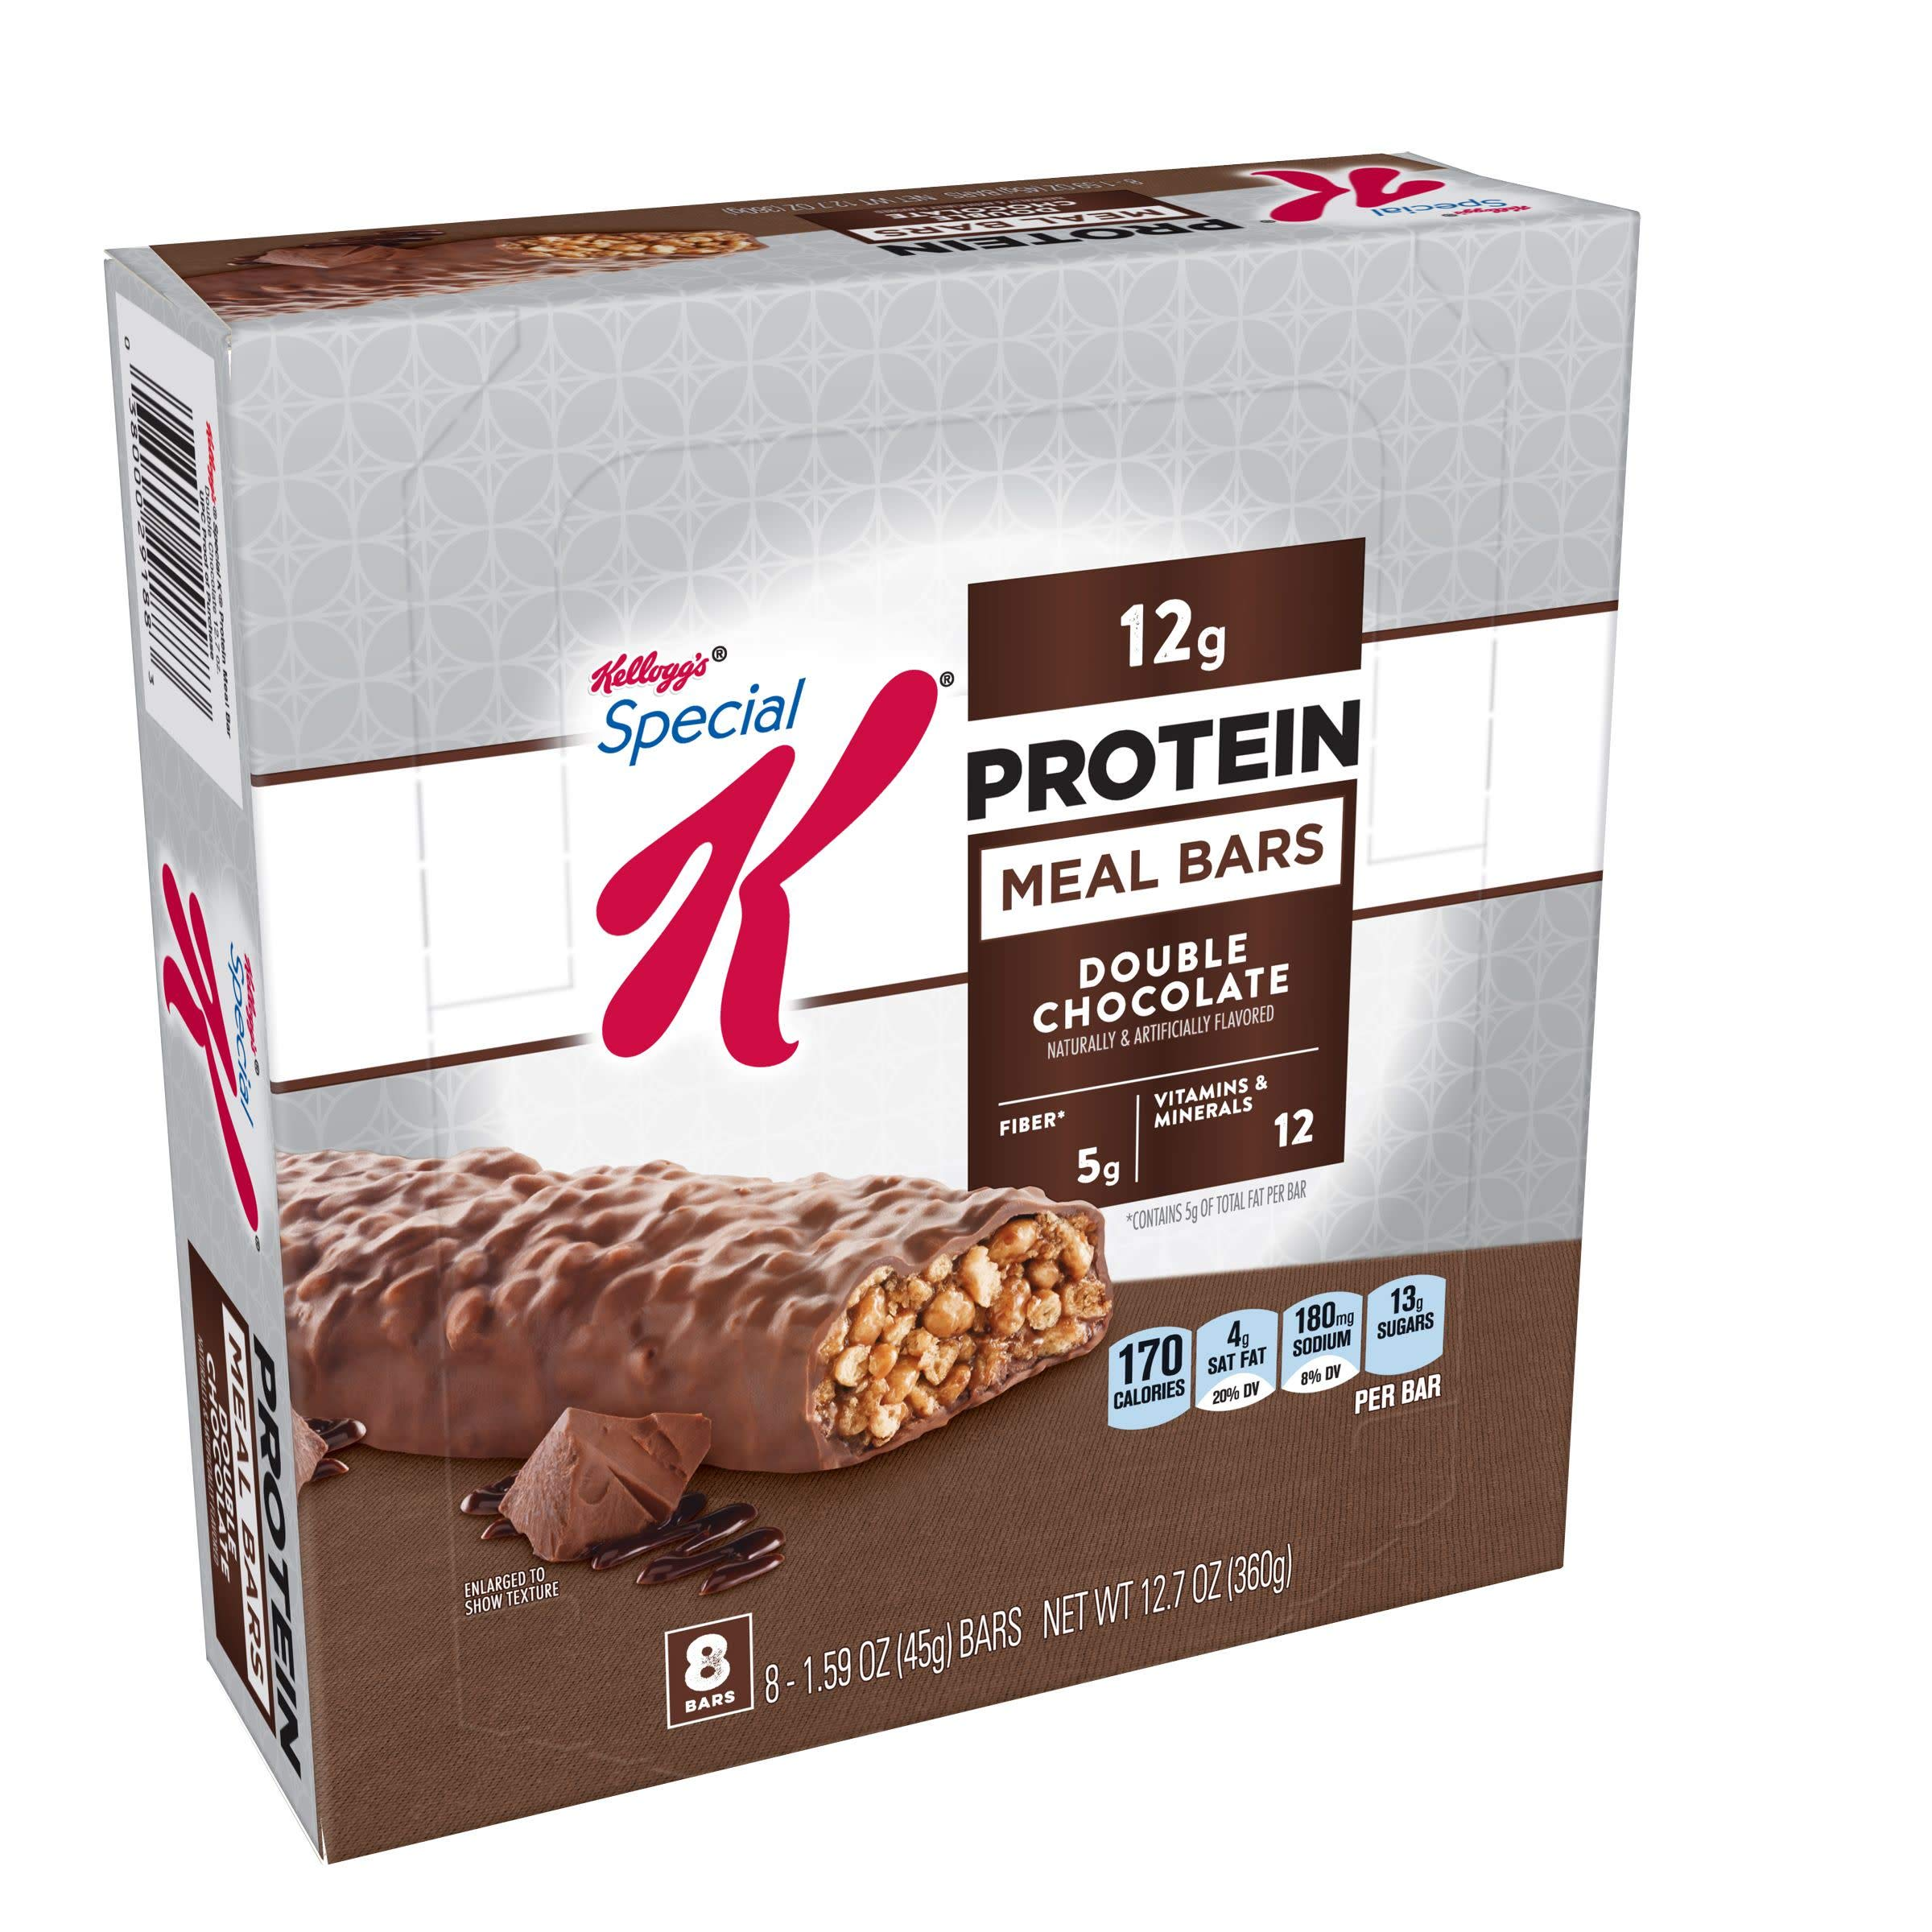 Special K Protein Meal Bars, Double Chocolate, 12.7 oz, 8 Count(Pack of 2) by Special K